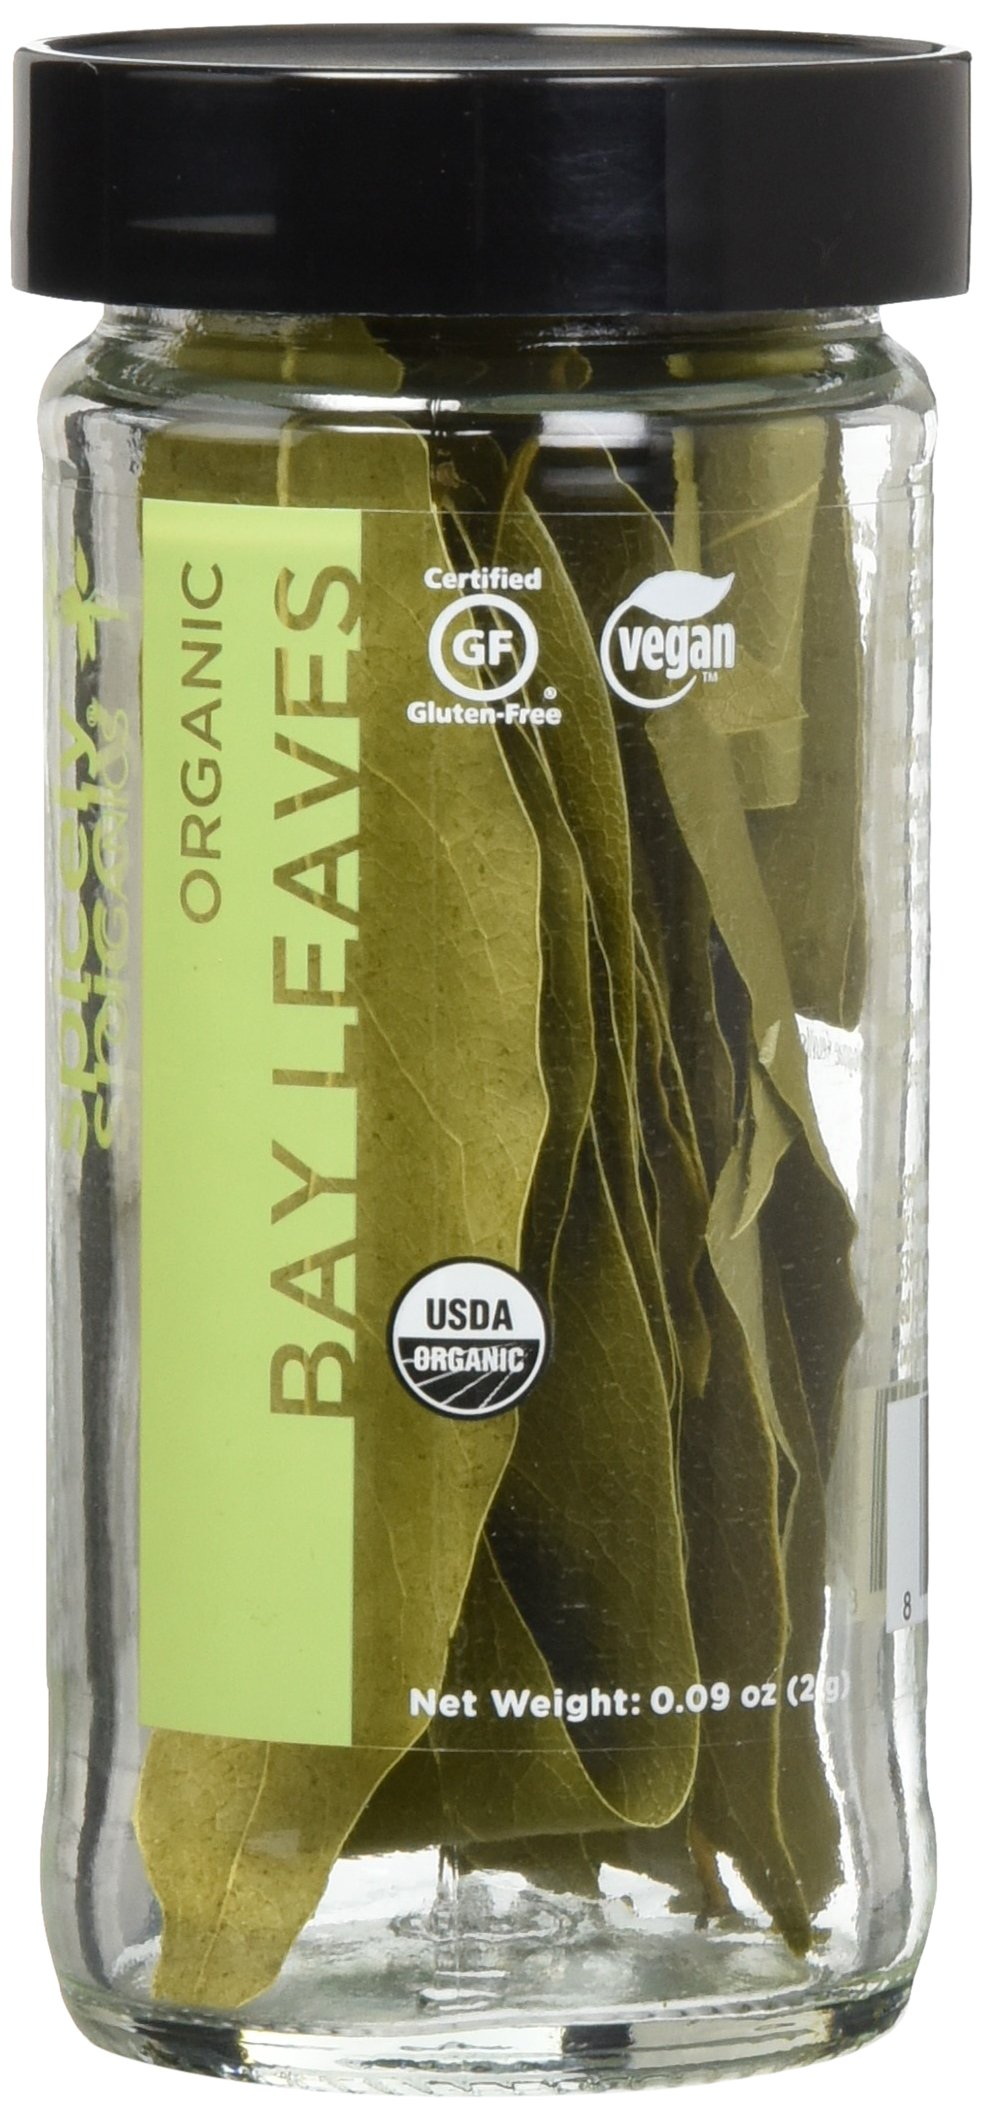 Spicely Organic Bay Leaves California Whole 0.09 Ounce Jar Certified Gluten Free